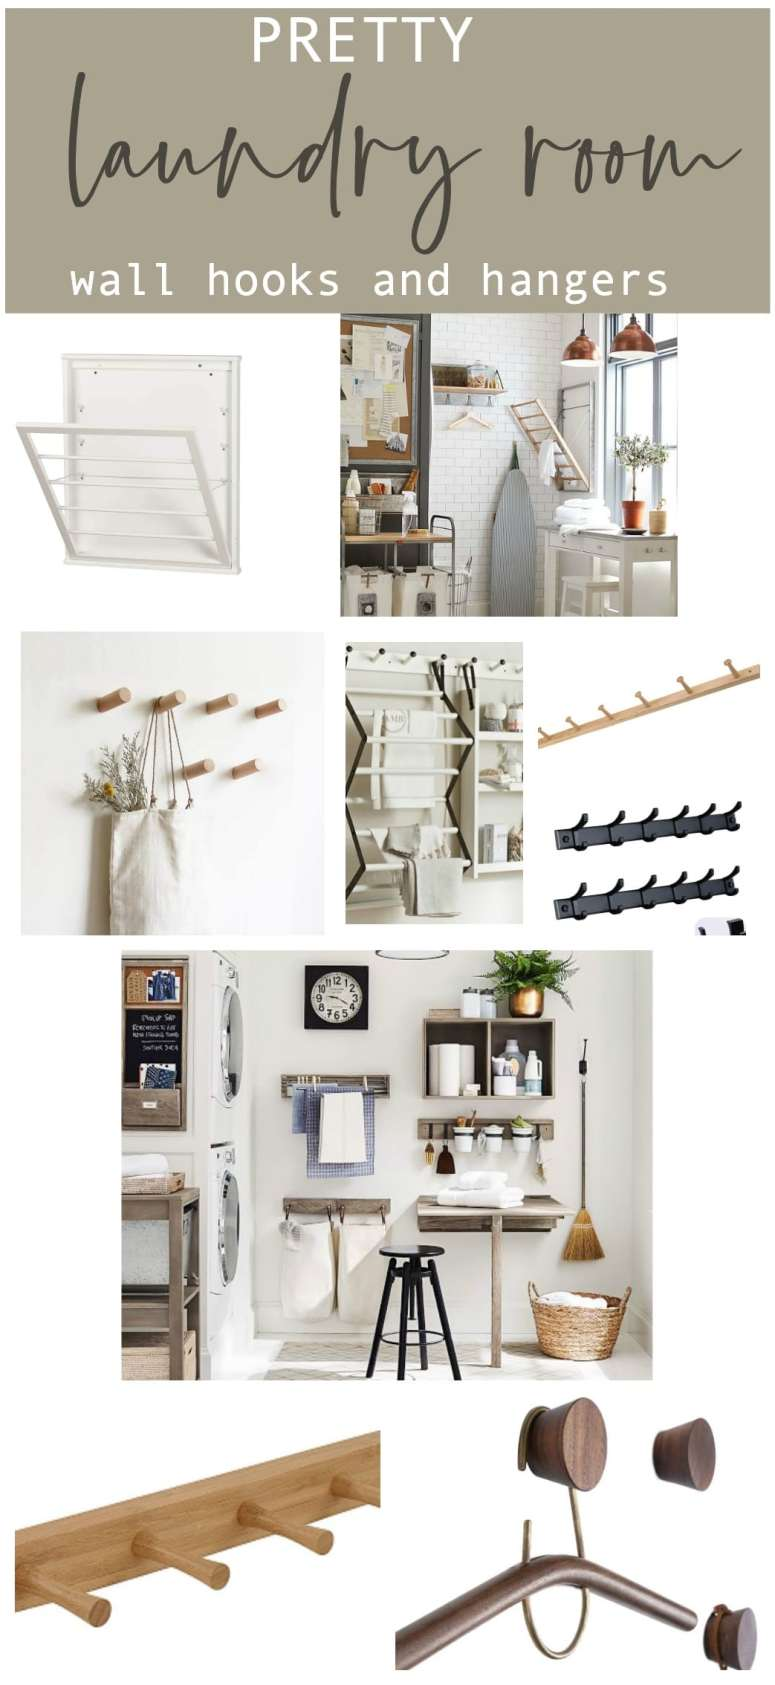 Pretty laundry room wall hooks and hangers for beautiful storage.